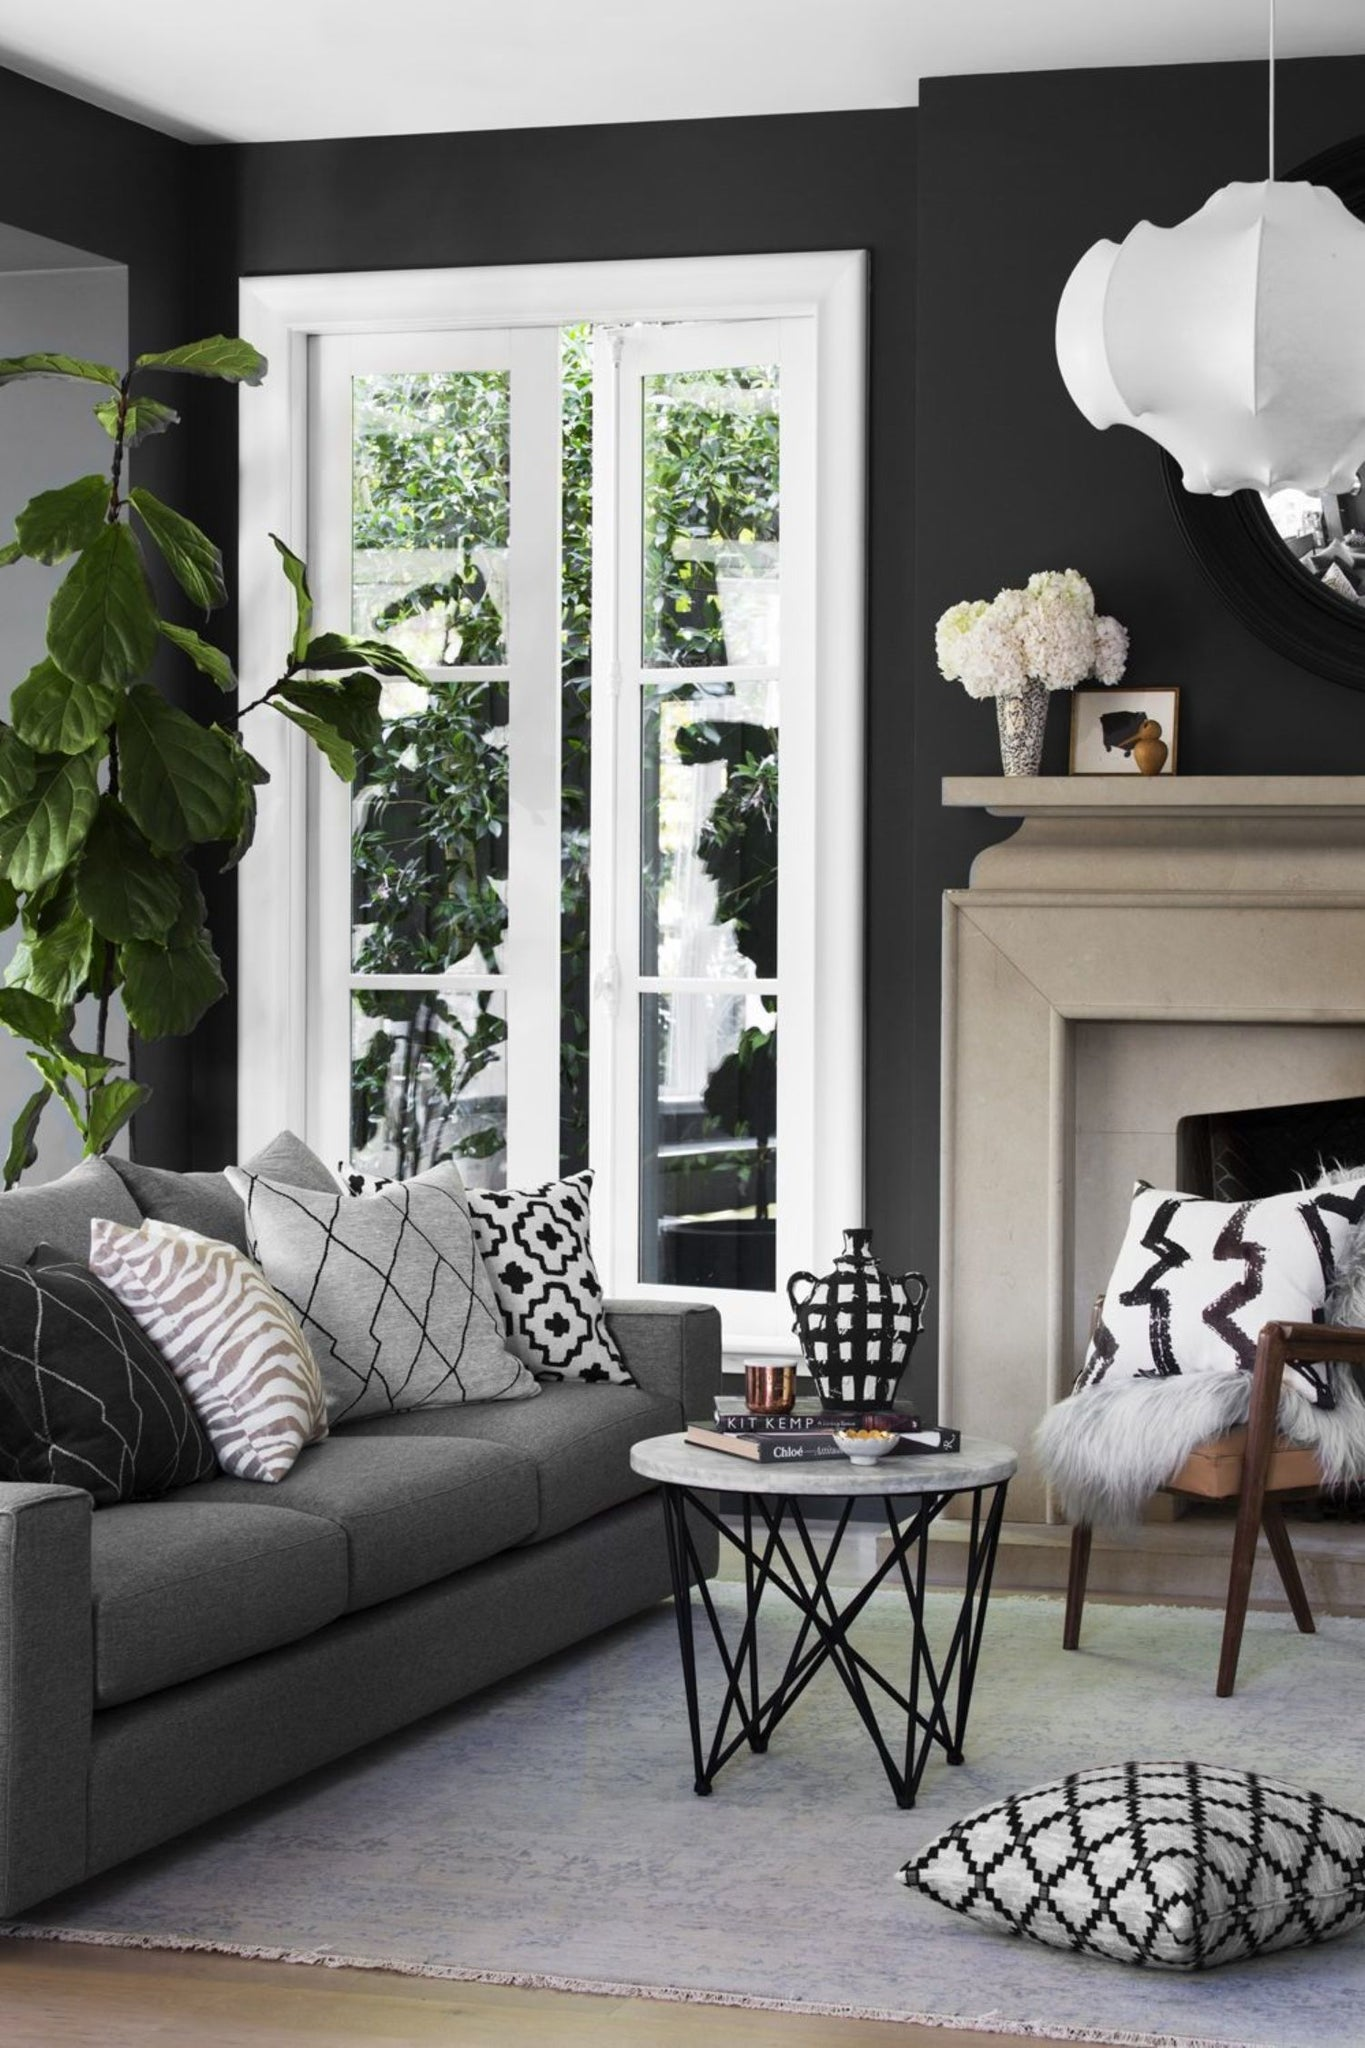 Dark Wall - Black Wall Paint - Interiors - Corinne Melanie Co